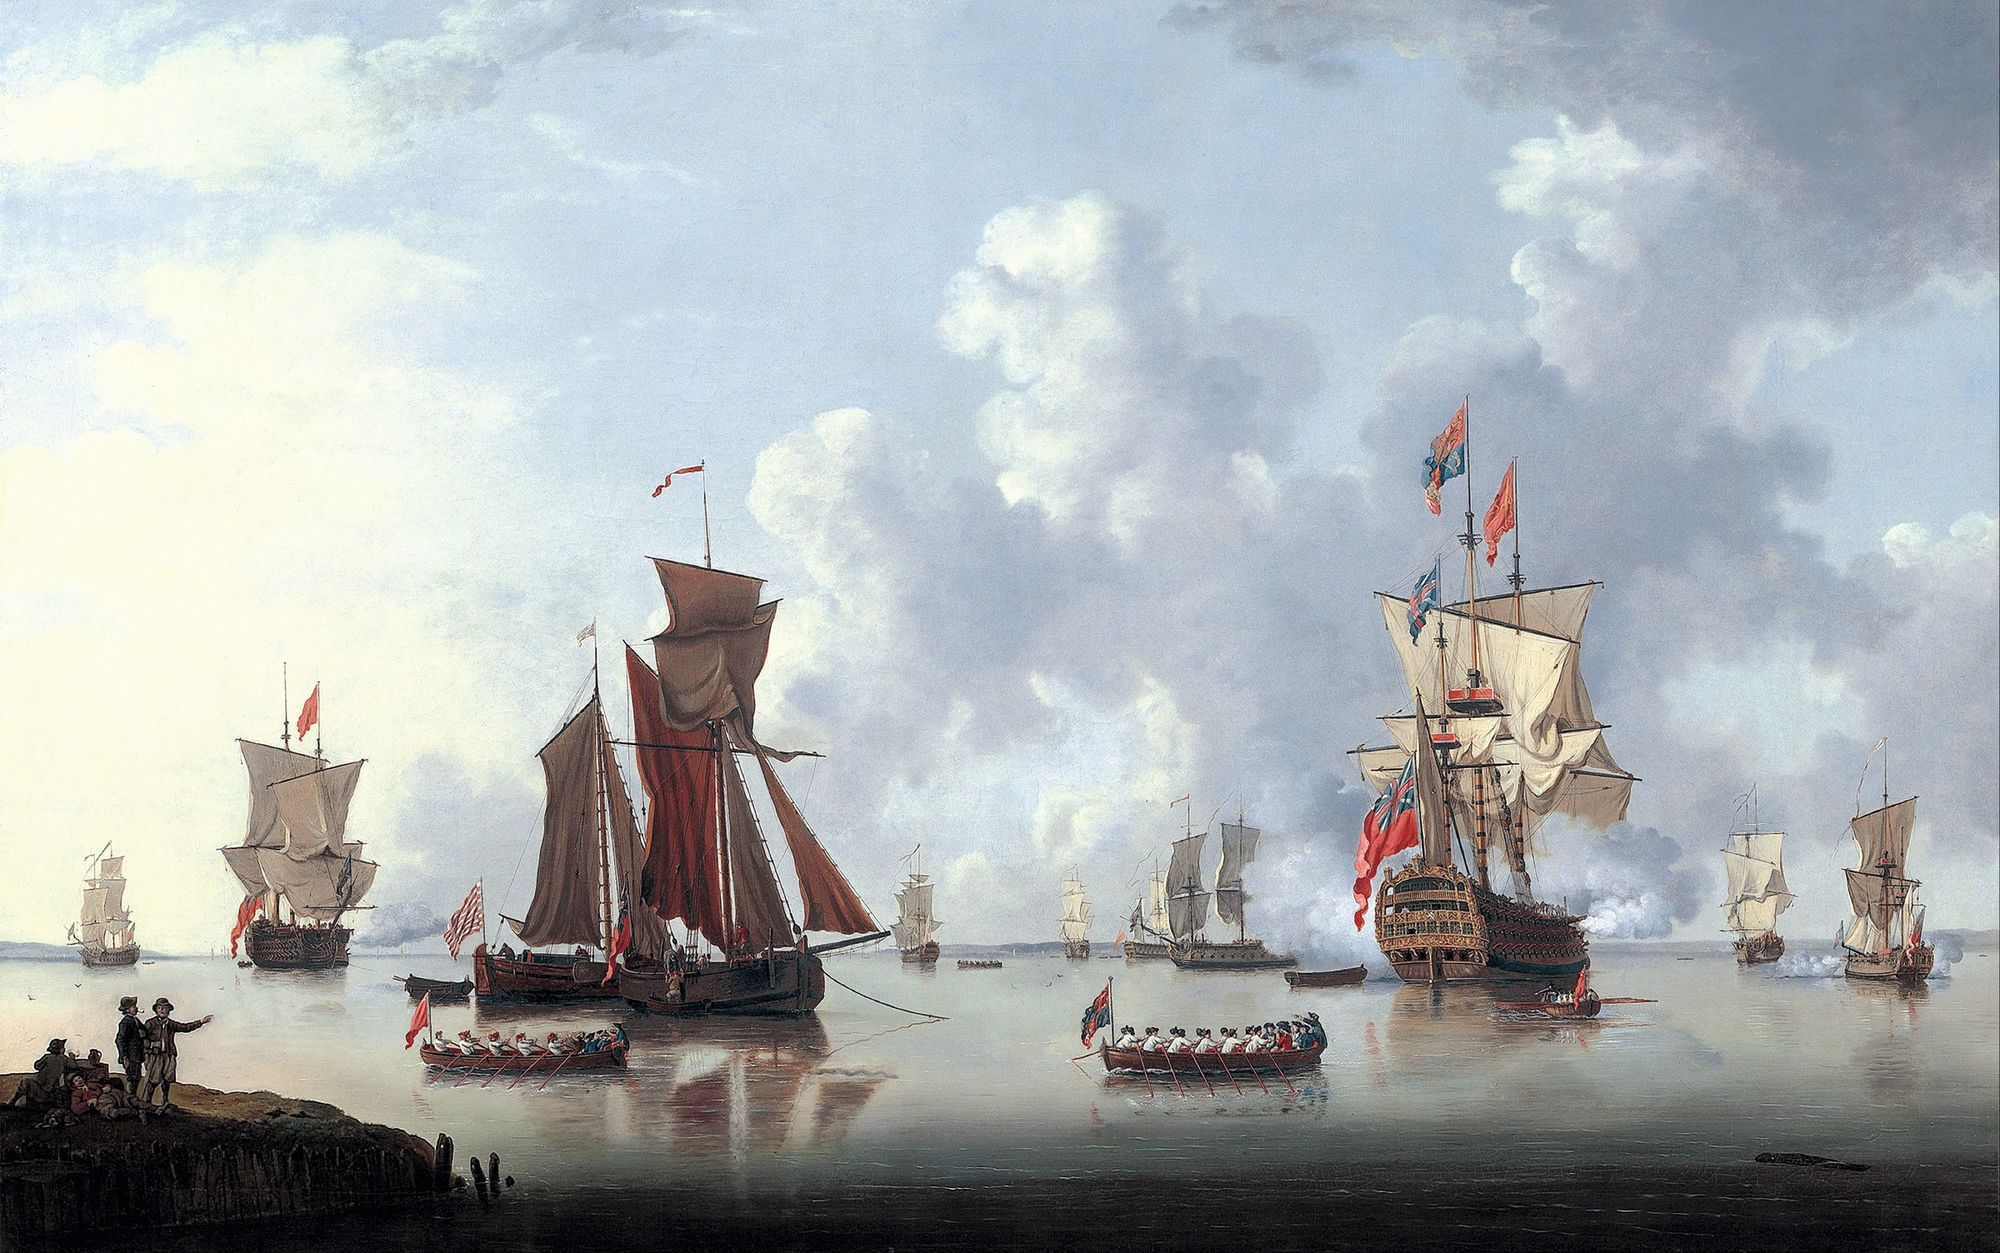 Francis Swain, Le Lancement du Sailor Prince à Spithead, 1765, huile sur toile, 10,6 x 16,7 cm, Art Gallery of South Australia, Adelaide